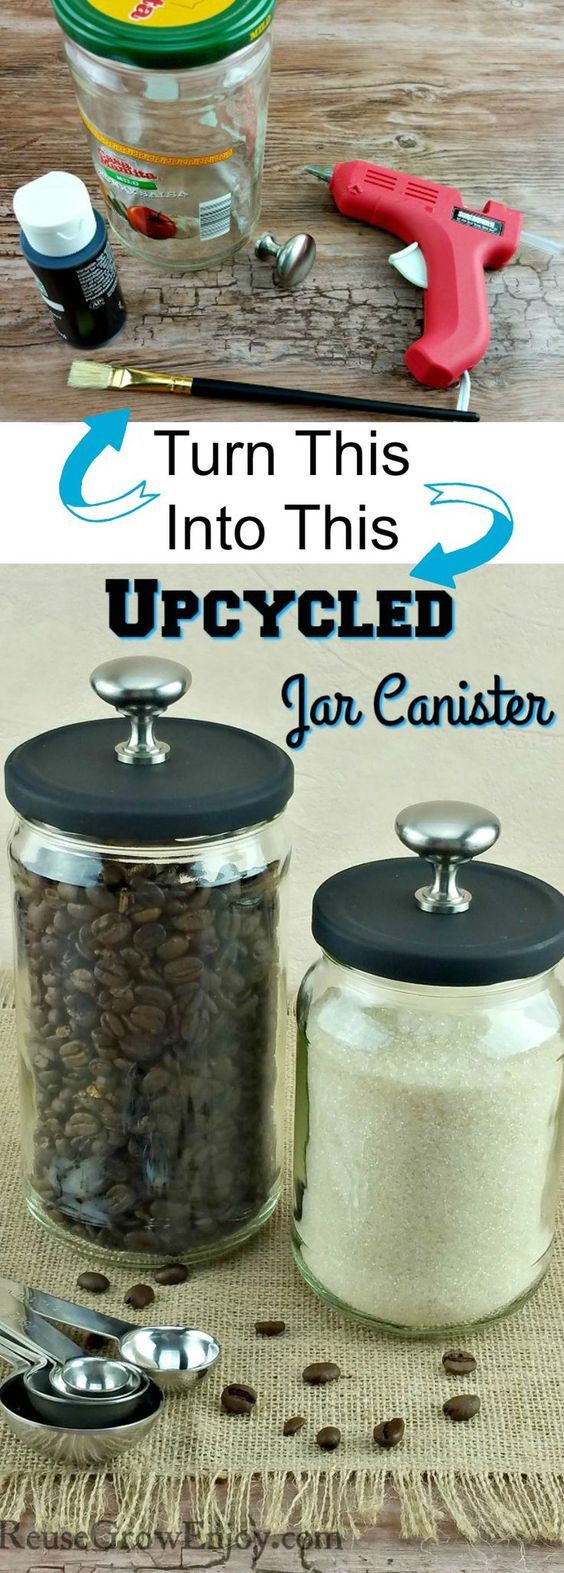 Upcycled Jar Canister | DIY Fun Tips